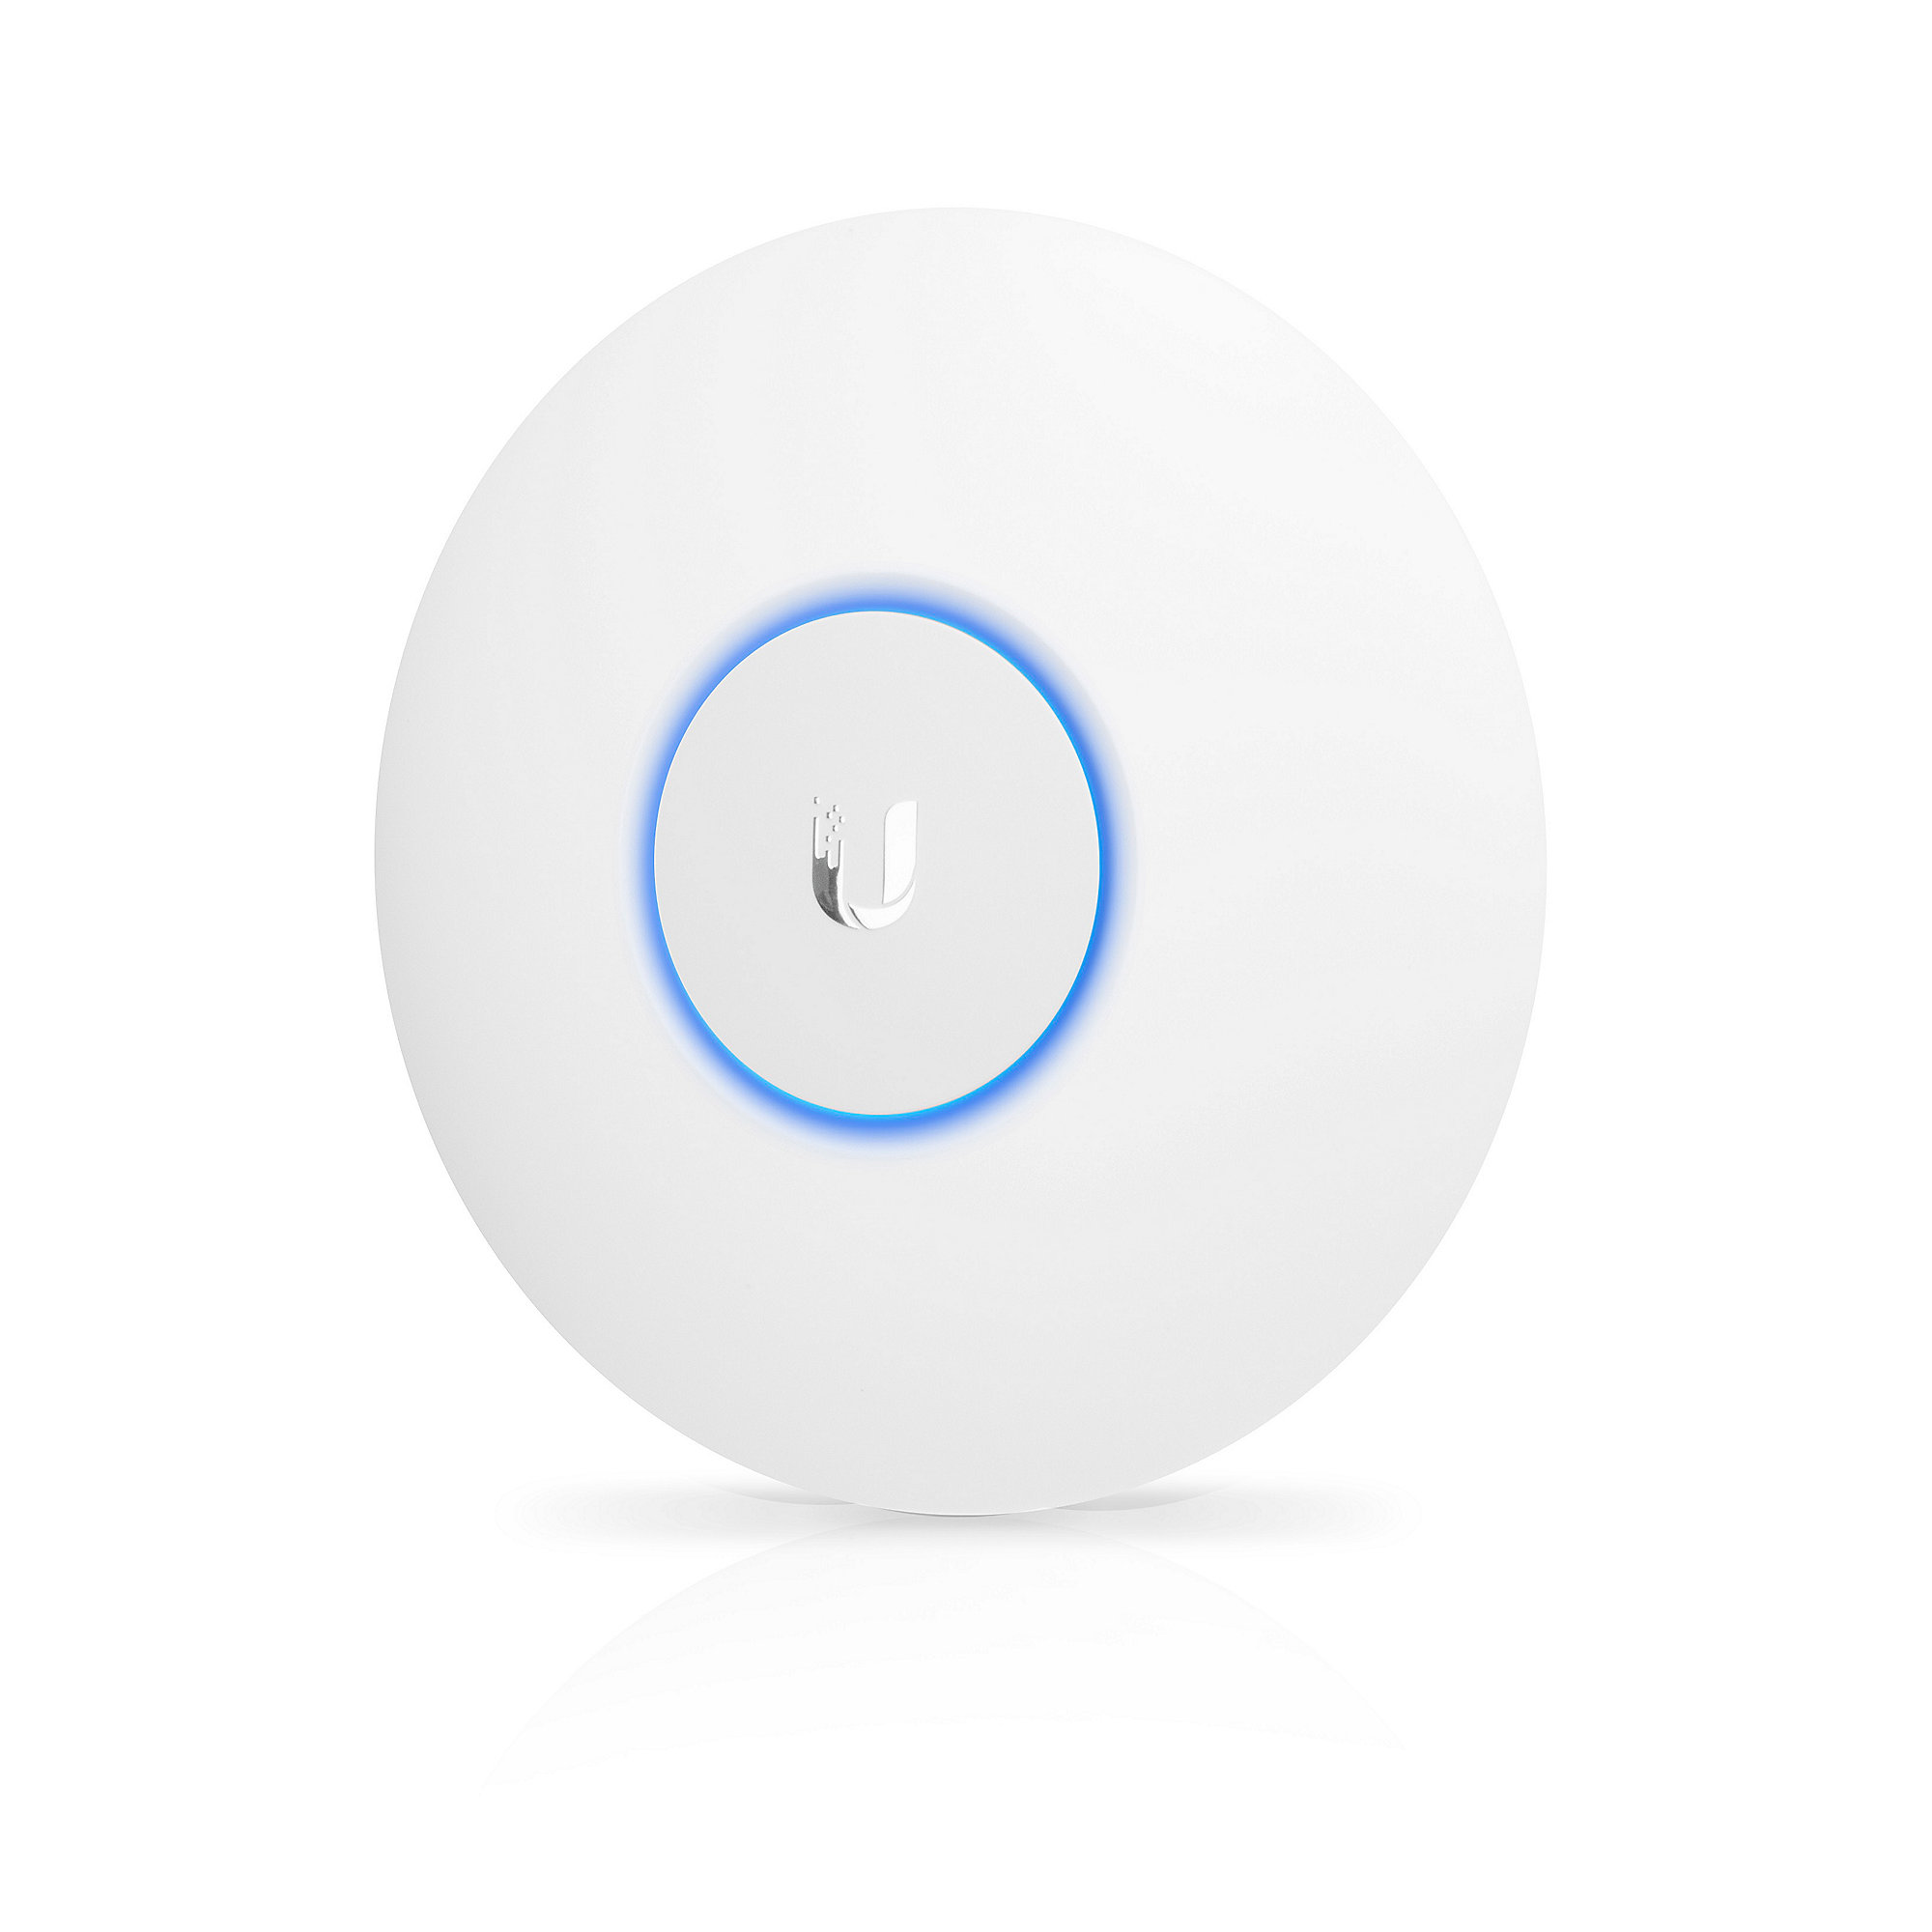 Ubiquiti UniFi UAP-AC-LITE DualBand WLAN Access Point